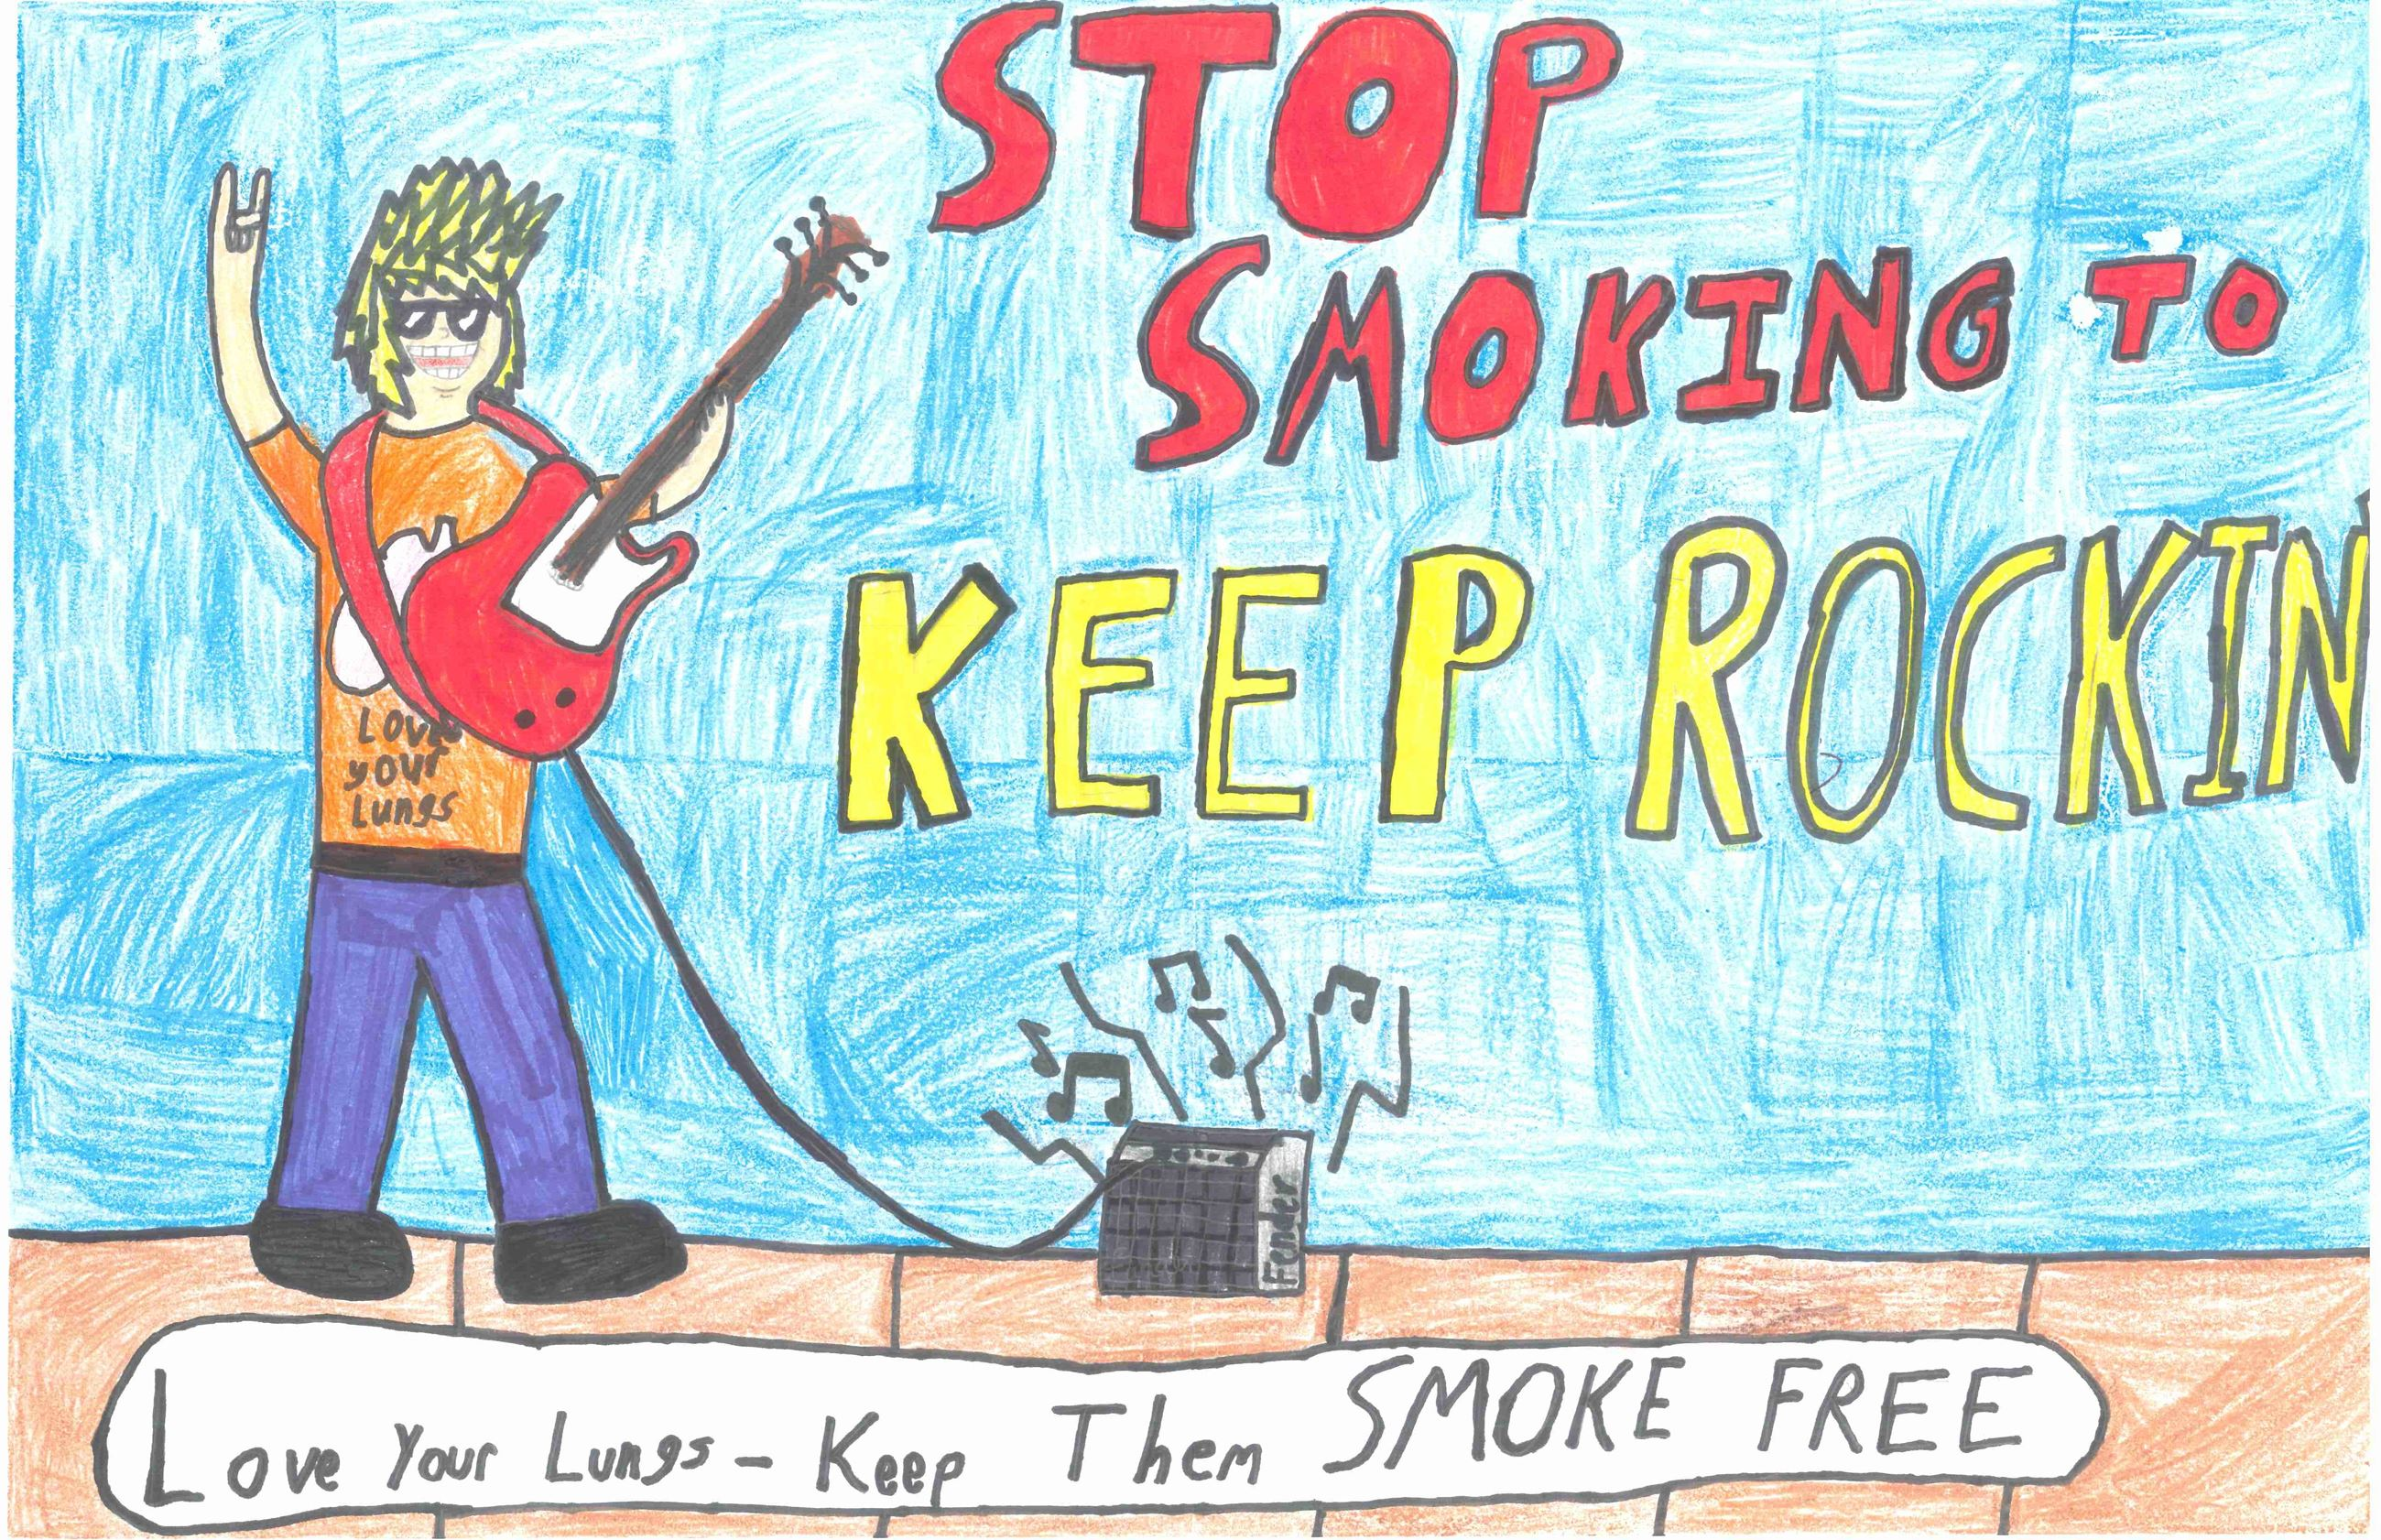 Hand drawn picture of a guitar player: Stop Smoking to Keep Rockin'